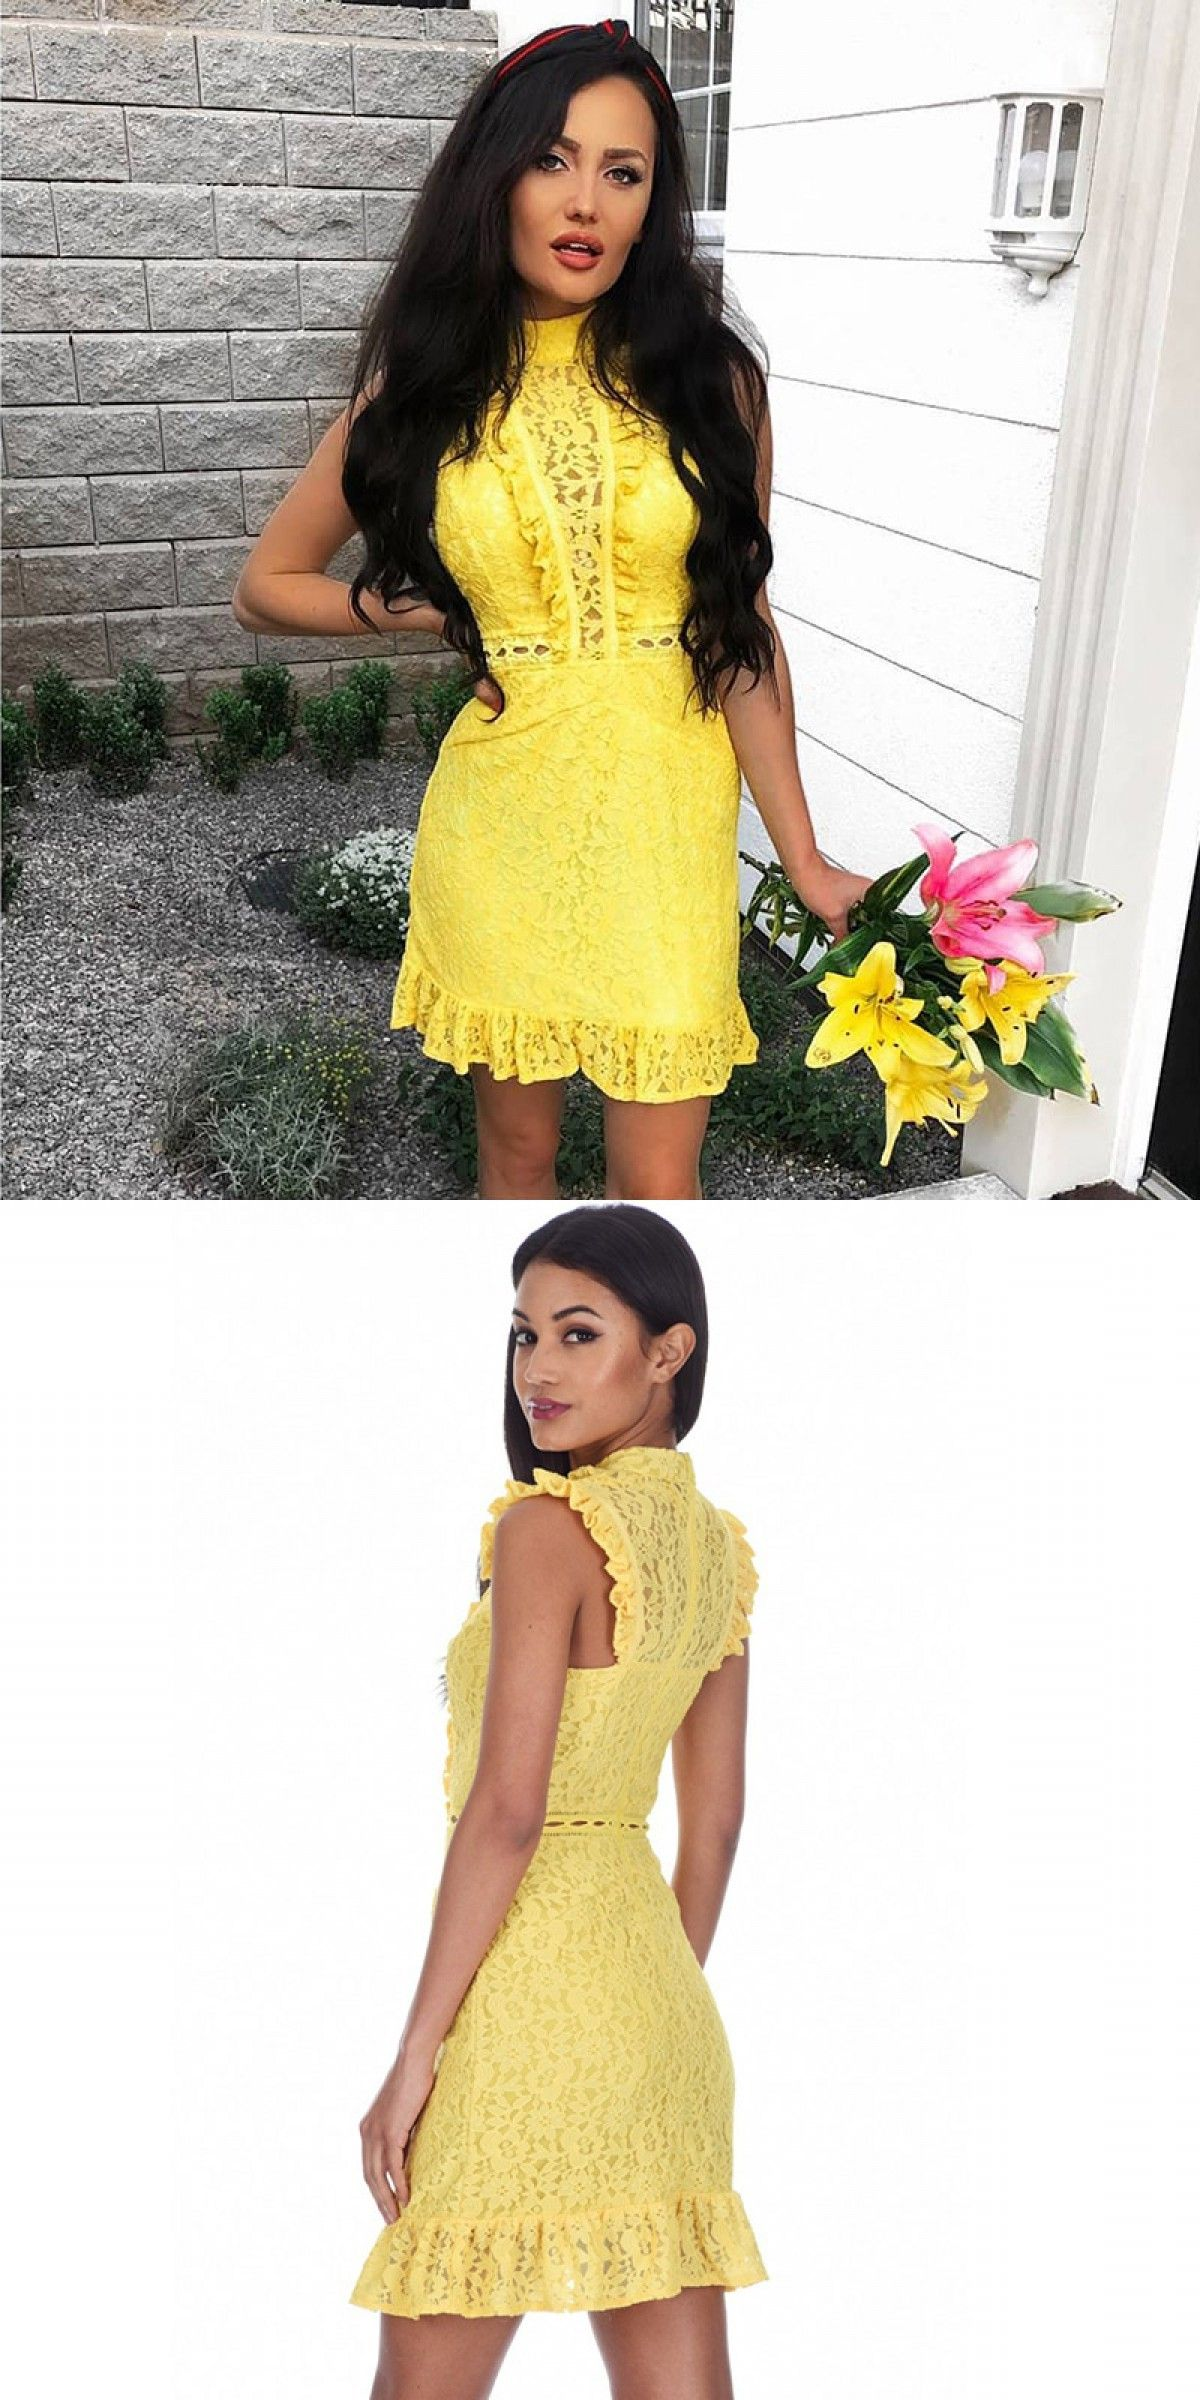 Sheath high neck yellow lace homecoming dress homecoming dresses